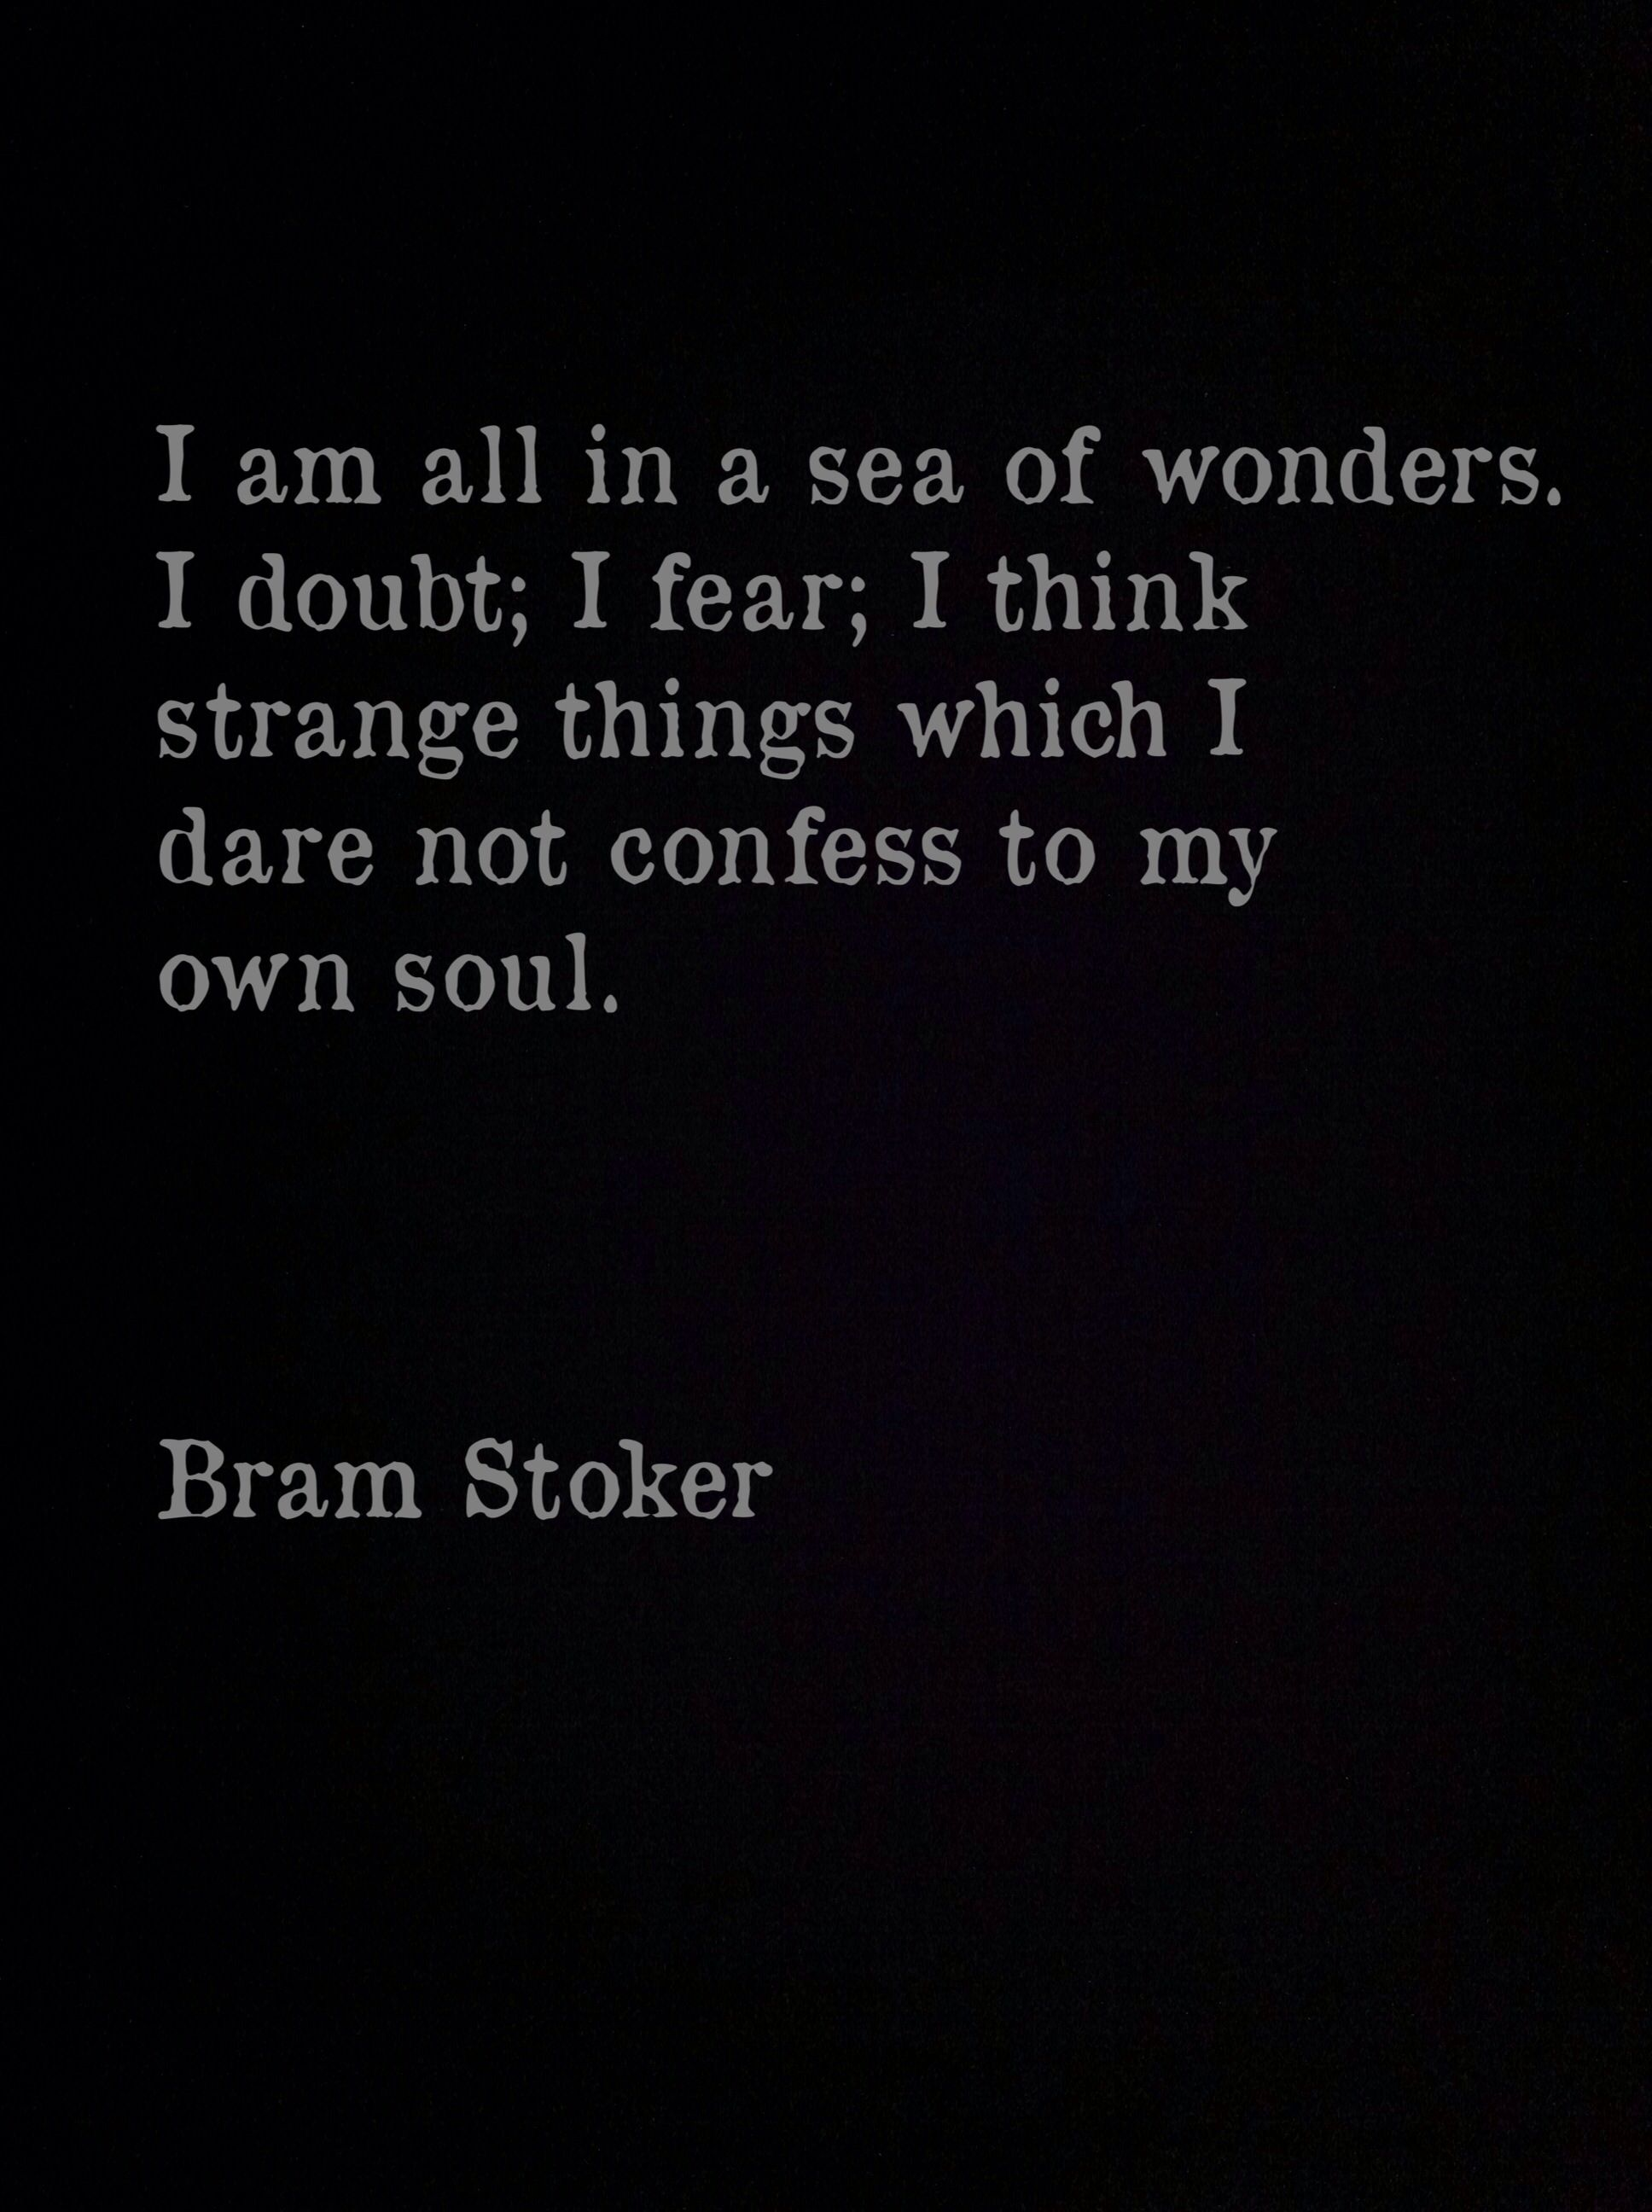 I Am All In A Sea Of Wonders Bram Stoker Words Of Wisdom And